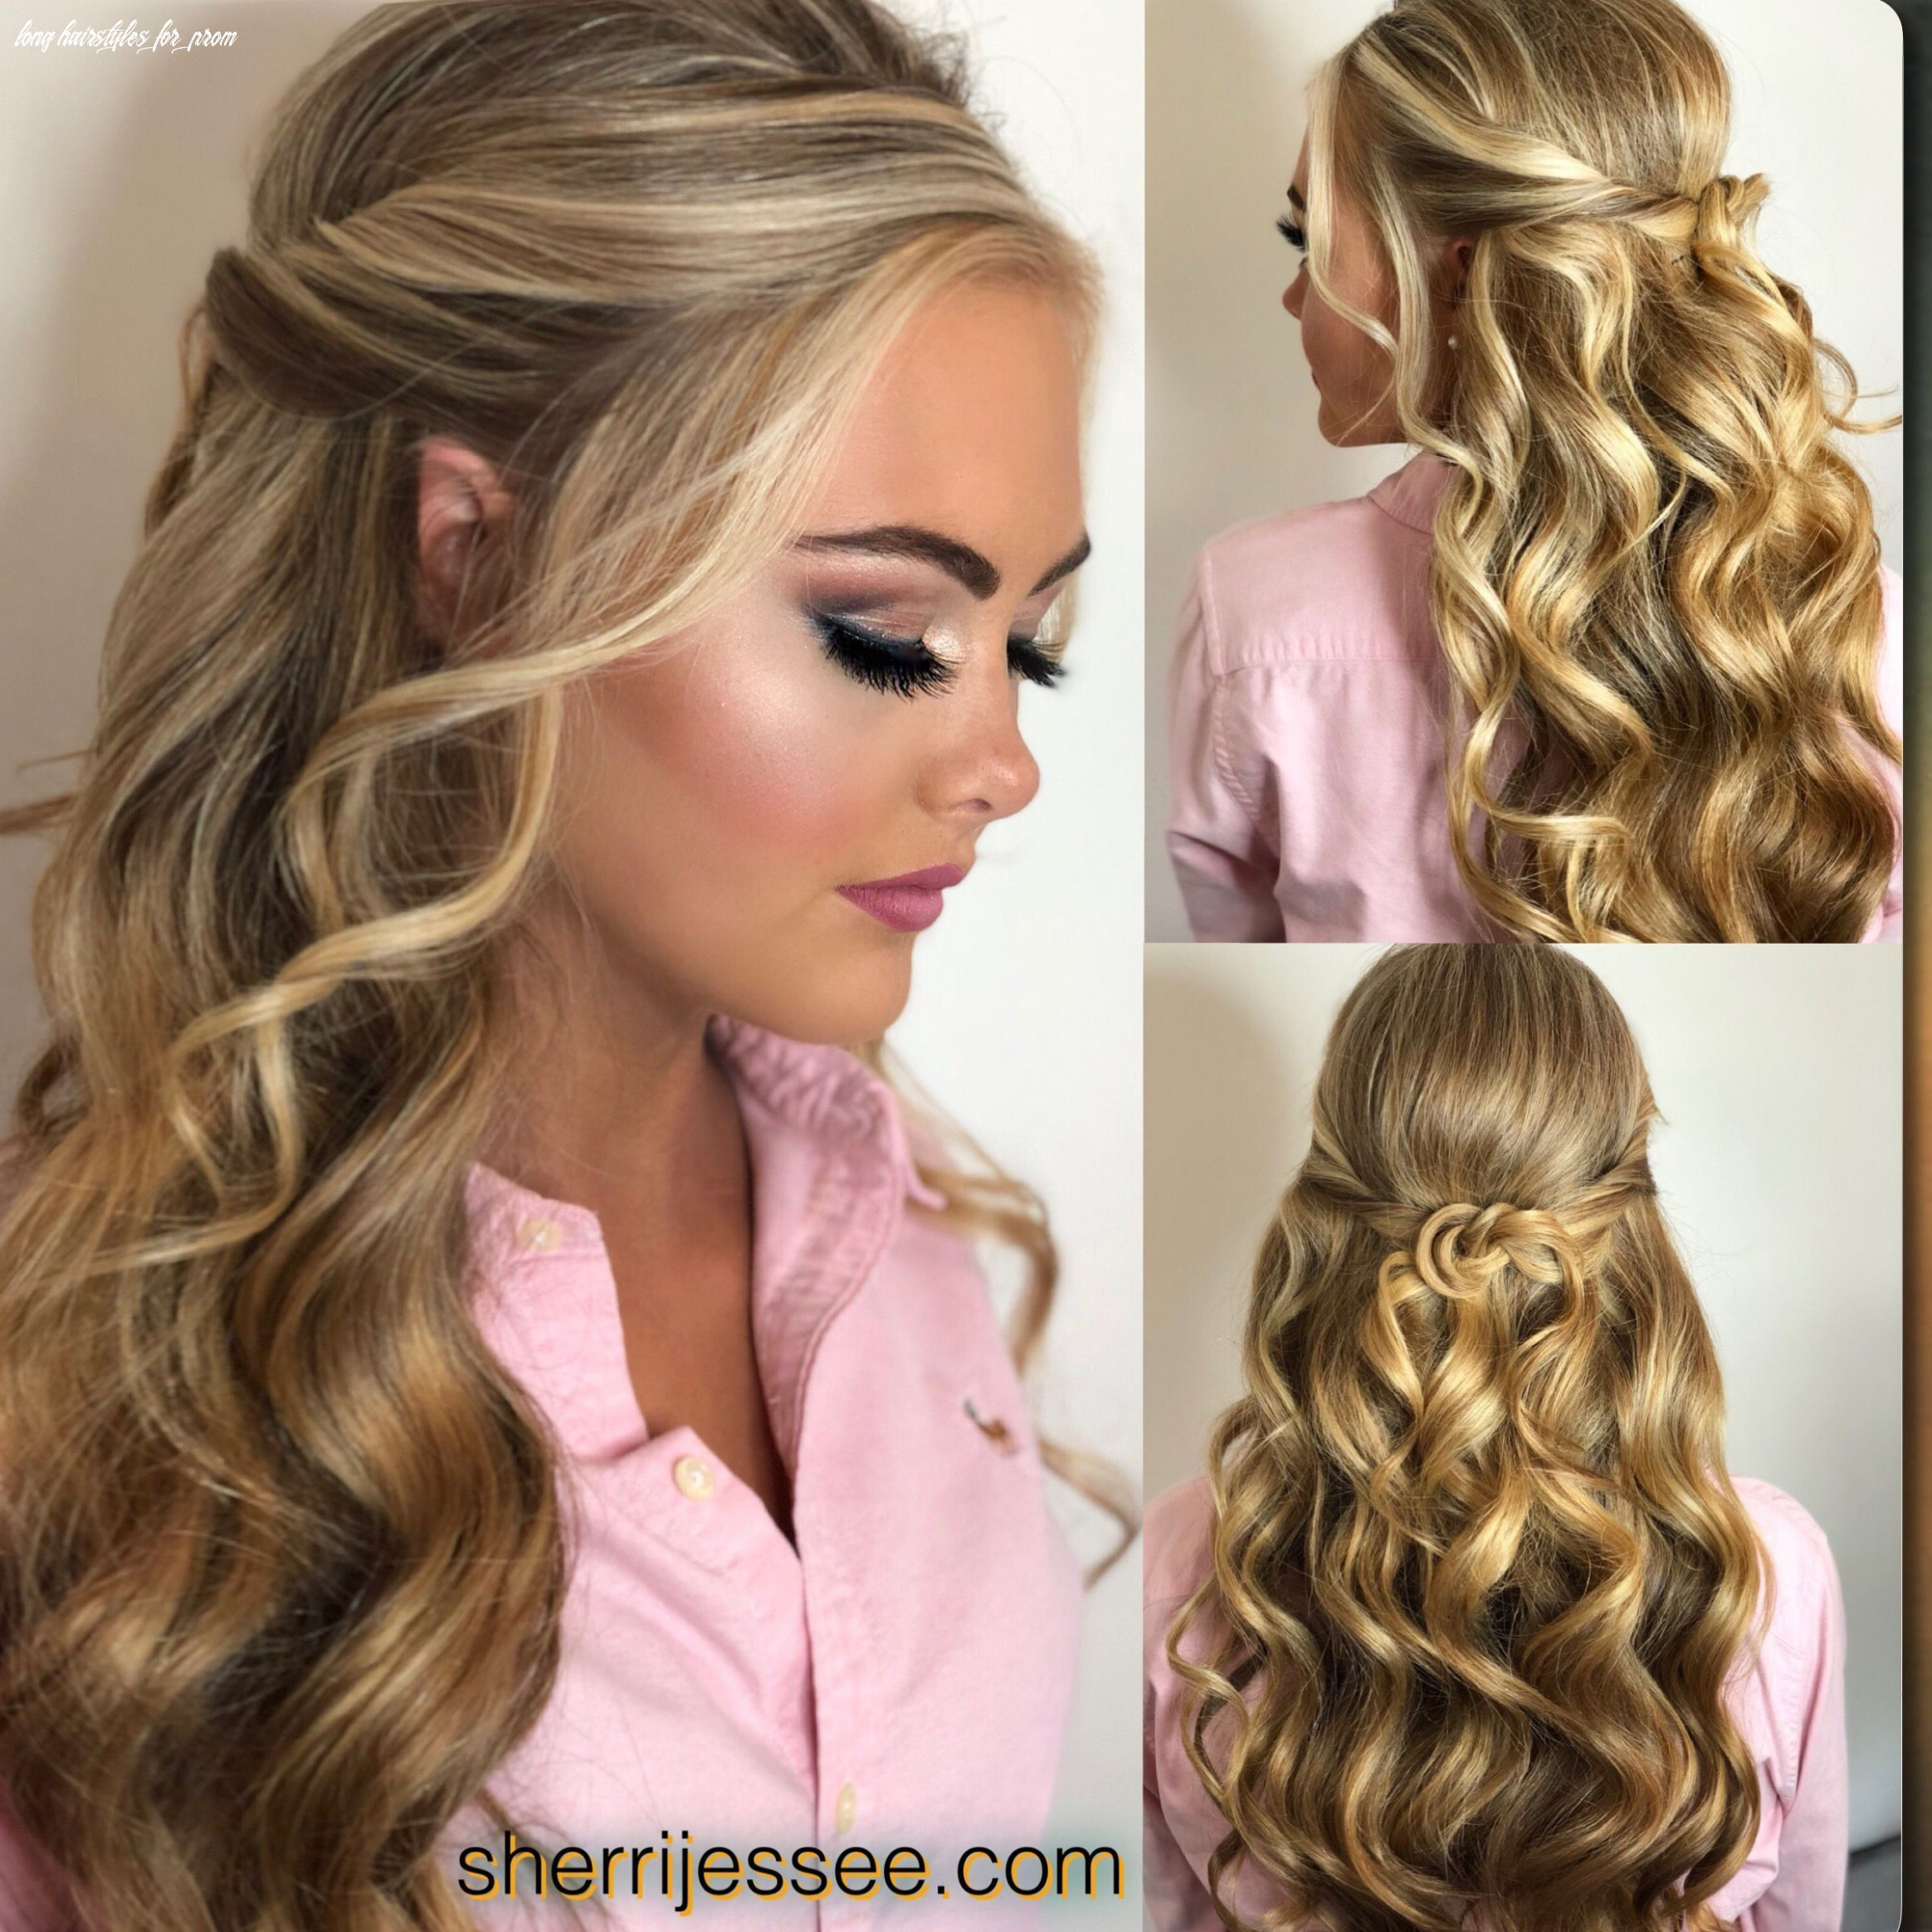 Curly hairstyles prom color 8 curly hair prom updos | blogvert